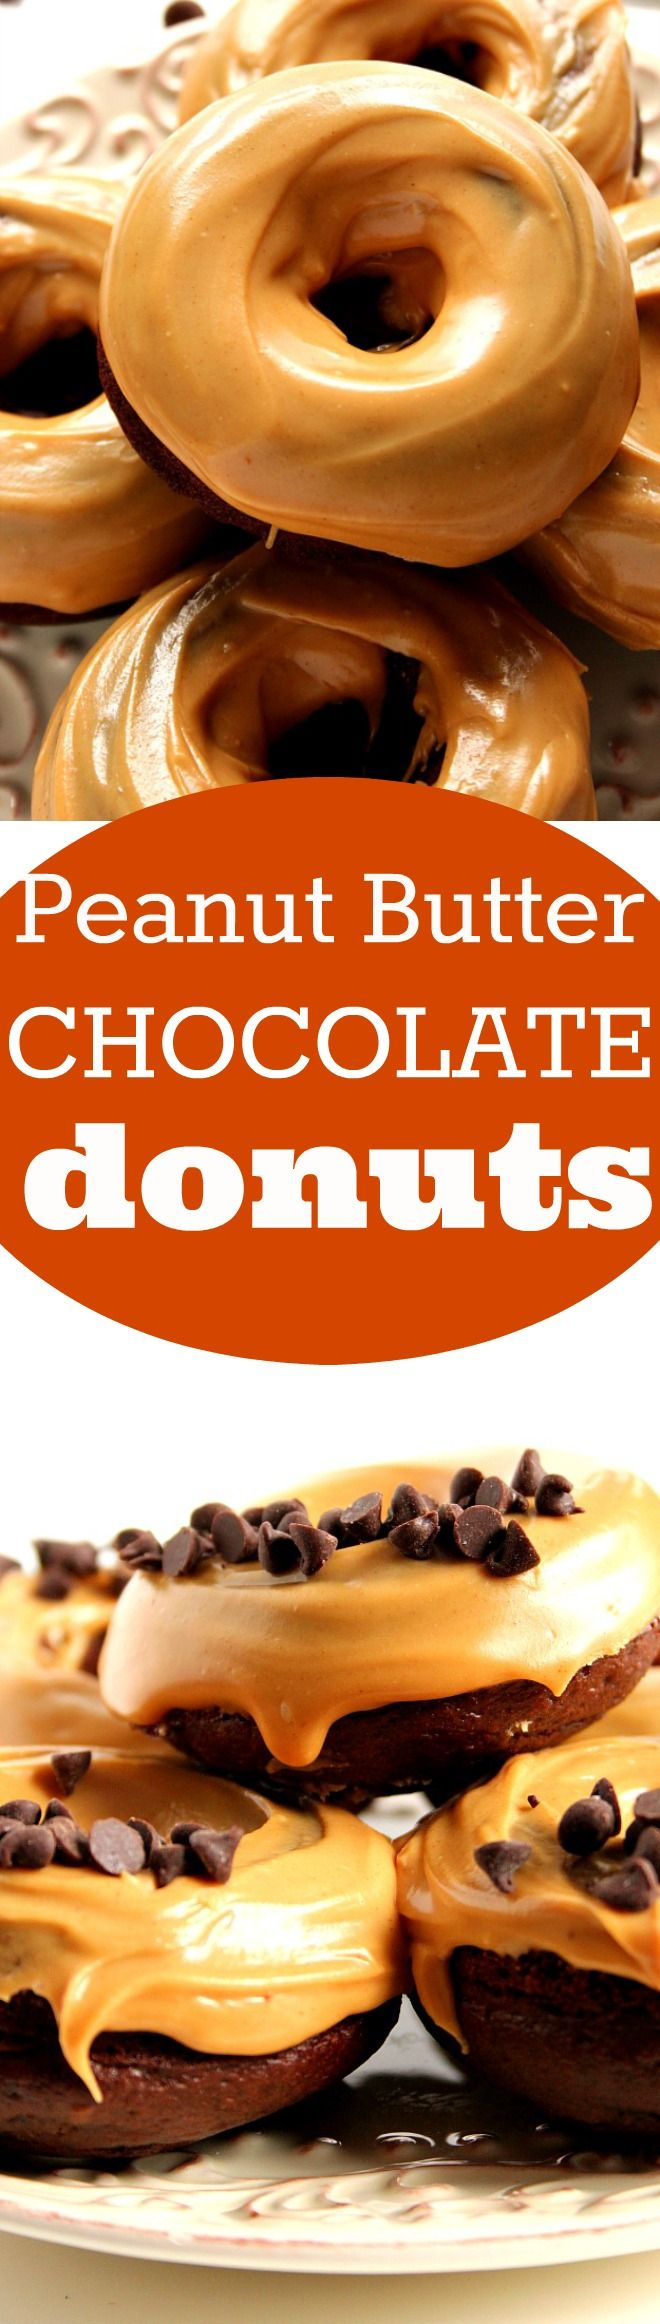 Made with real belgian chocolate this fun chocolate animals make - Peanut Butter Glazed Chocolate Donuts